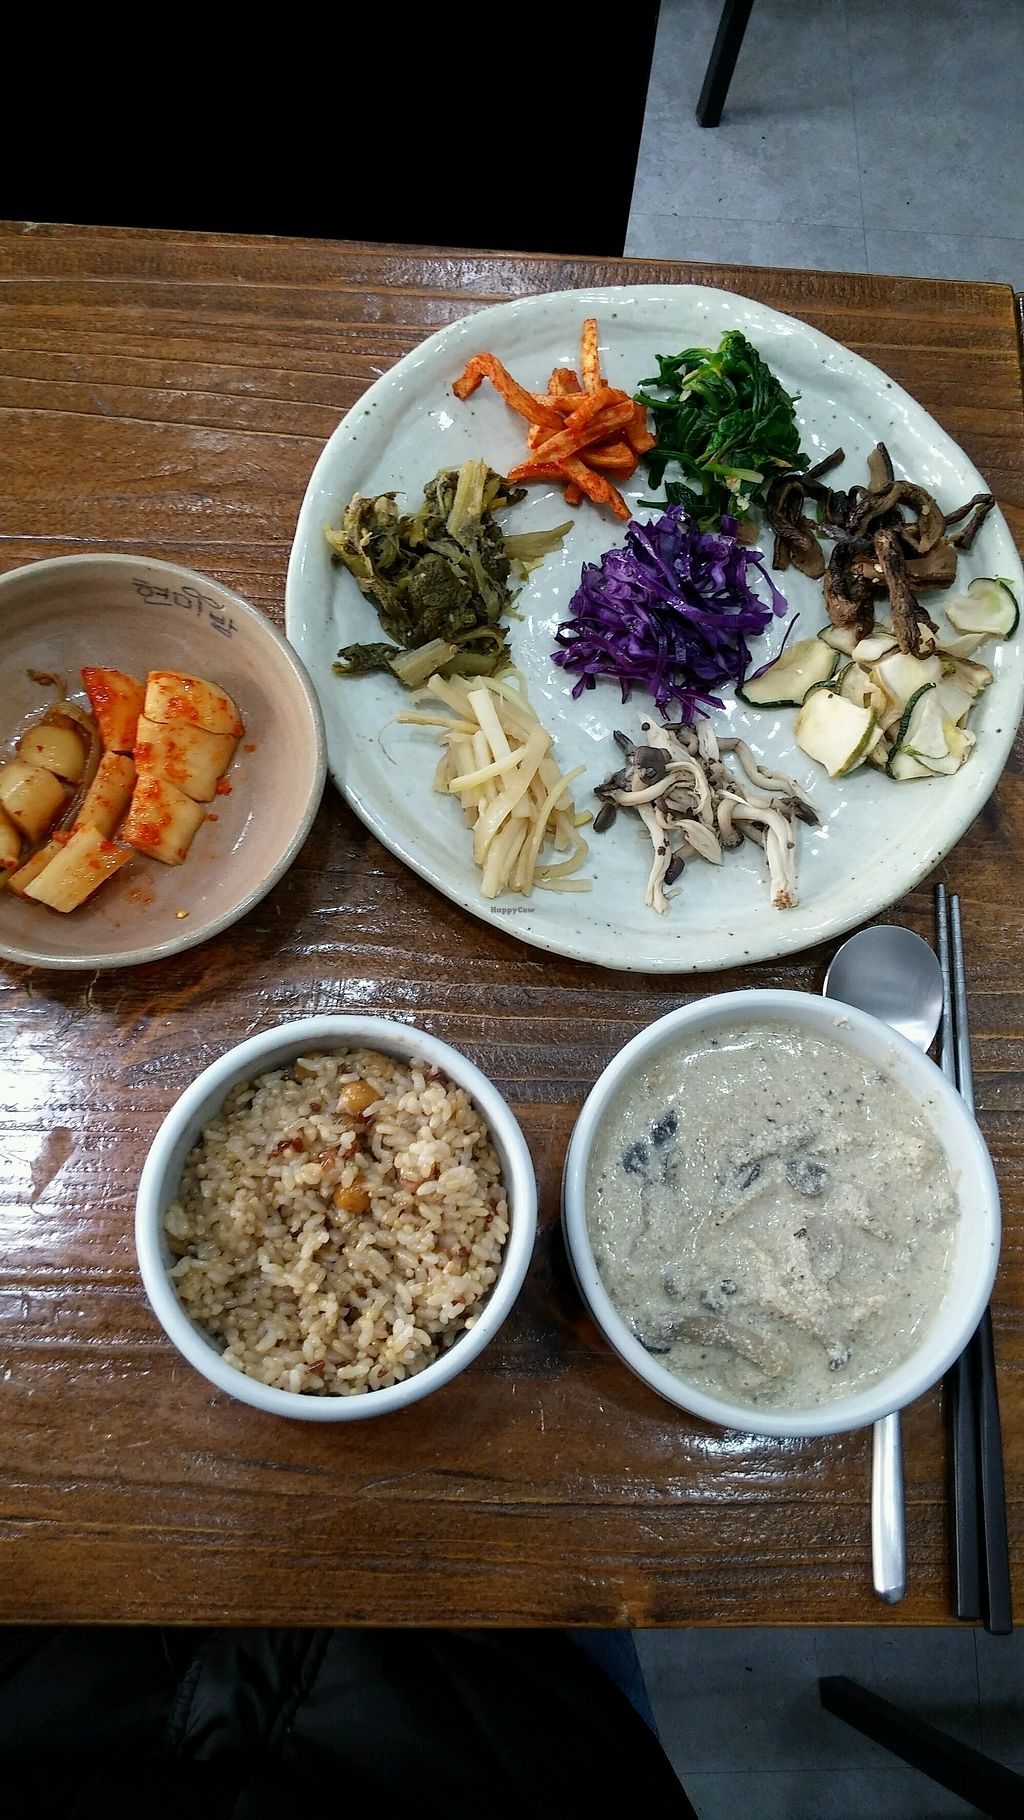 "Photo of Hyeonmibab - Brown Rice Cafe - 현미밥 Café  by <a href=""/members/profile/JYRoh"">JYRoh</a> <br/>brownrice with namul <br/> January 6, 2018  - <a href='/contact/abuse/image/63828/343516'>Report</a>"